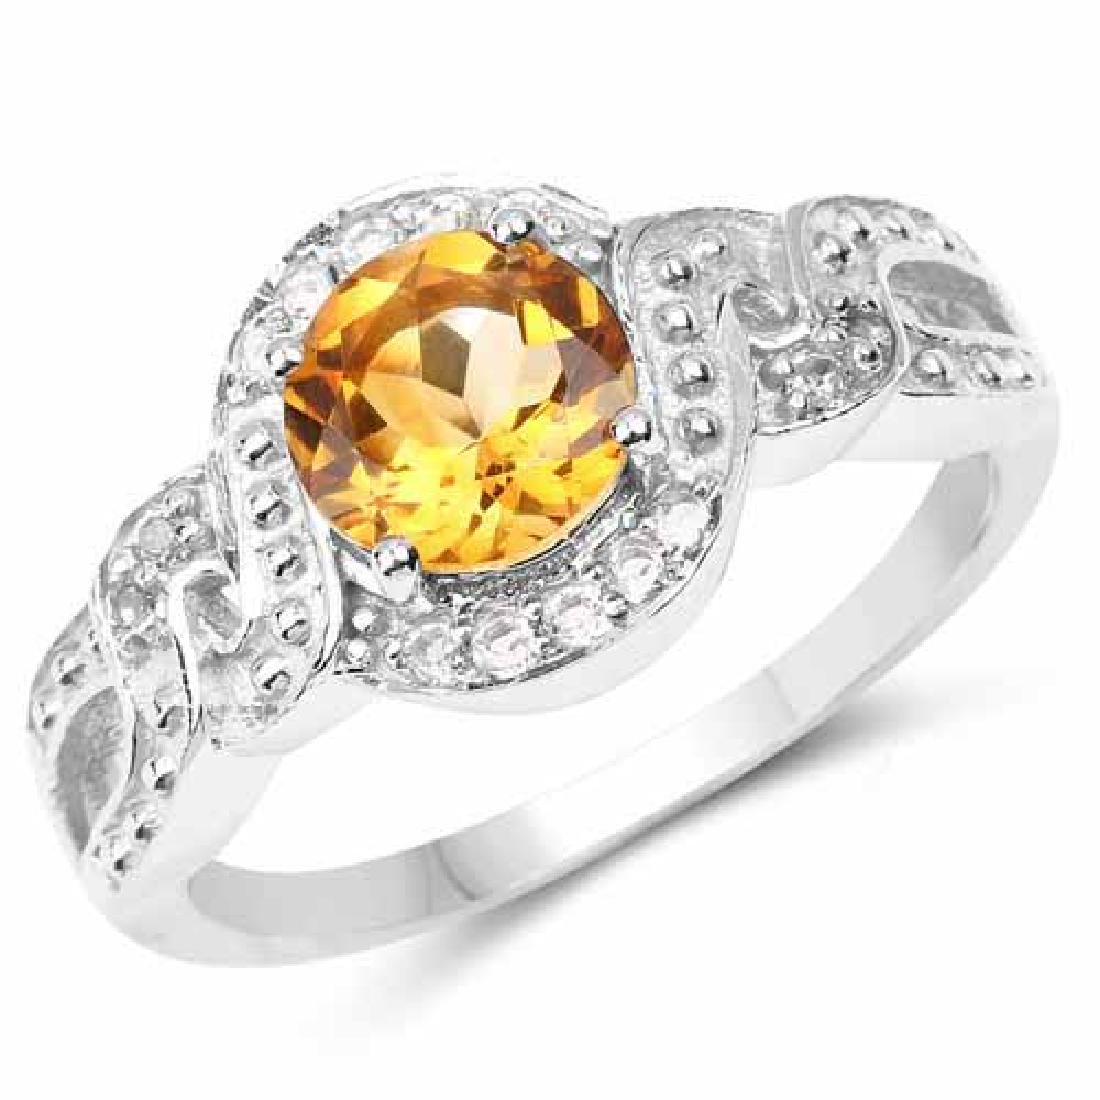 3.00 Carat Genuine Citrine and White Topaz .925 Sterlin